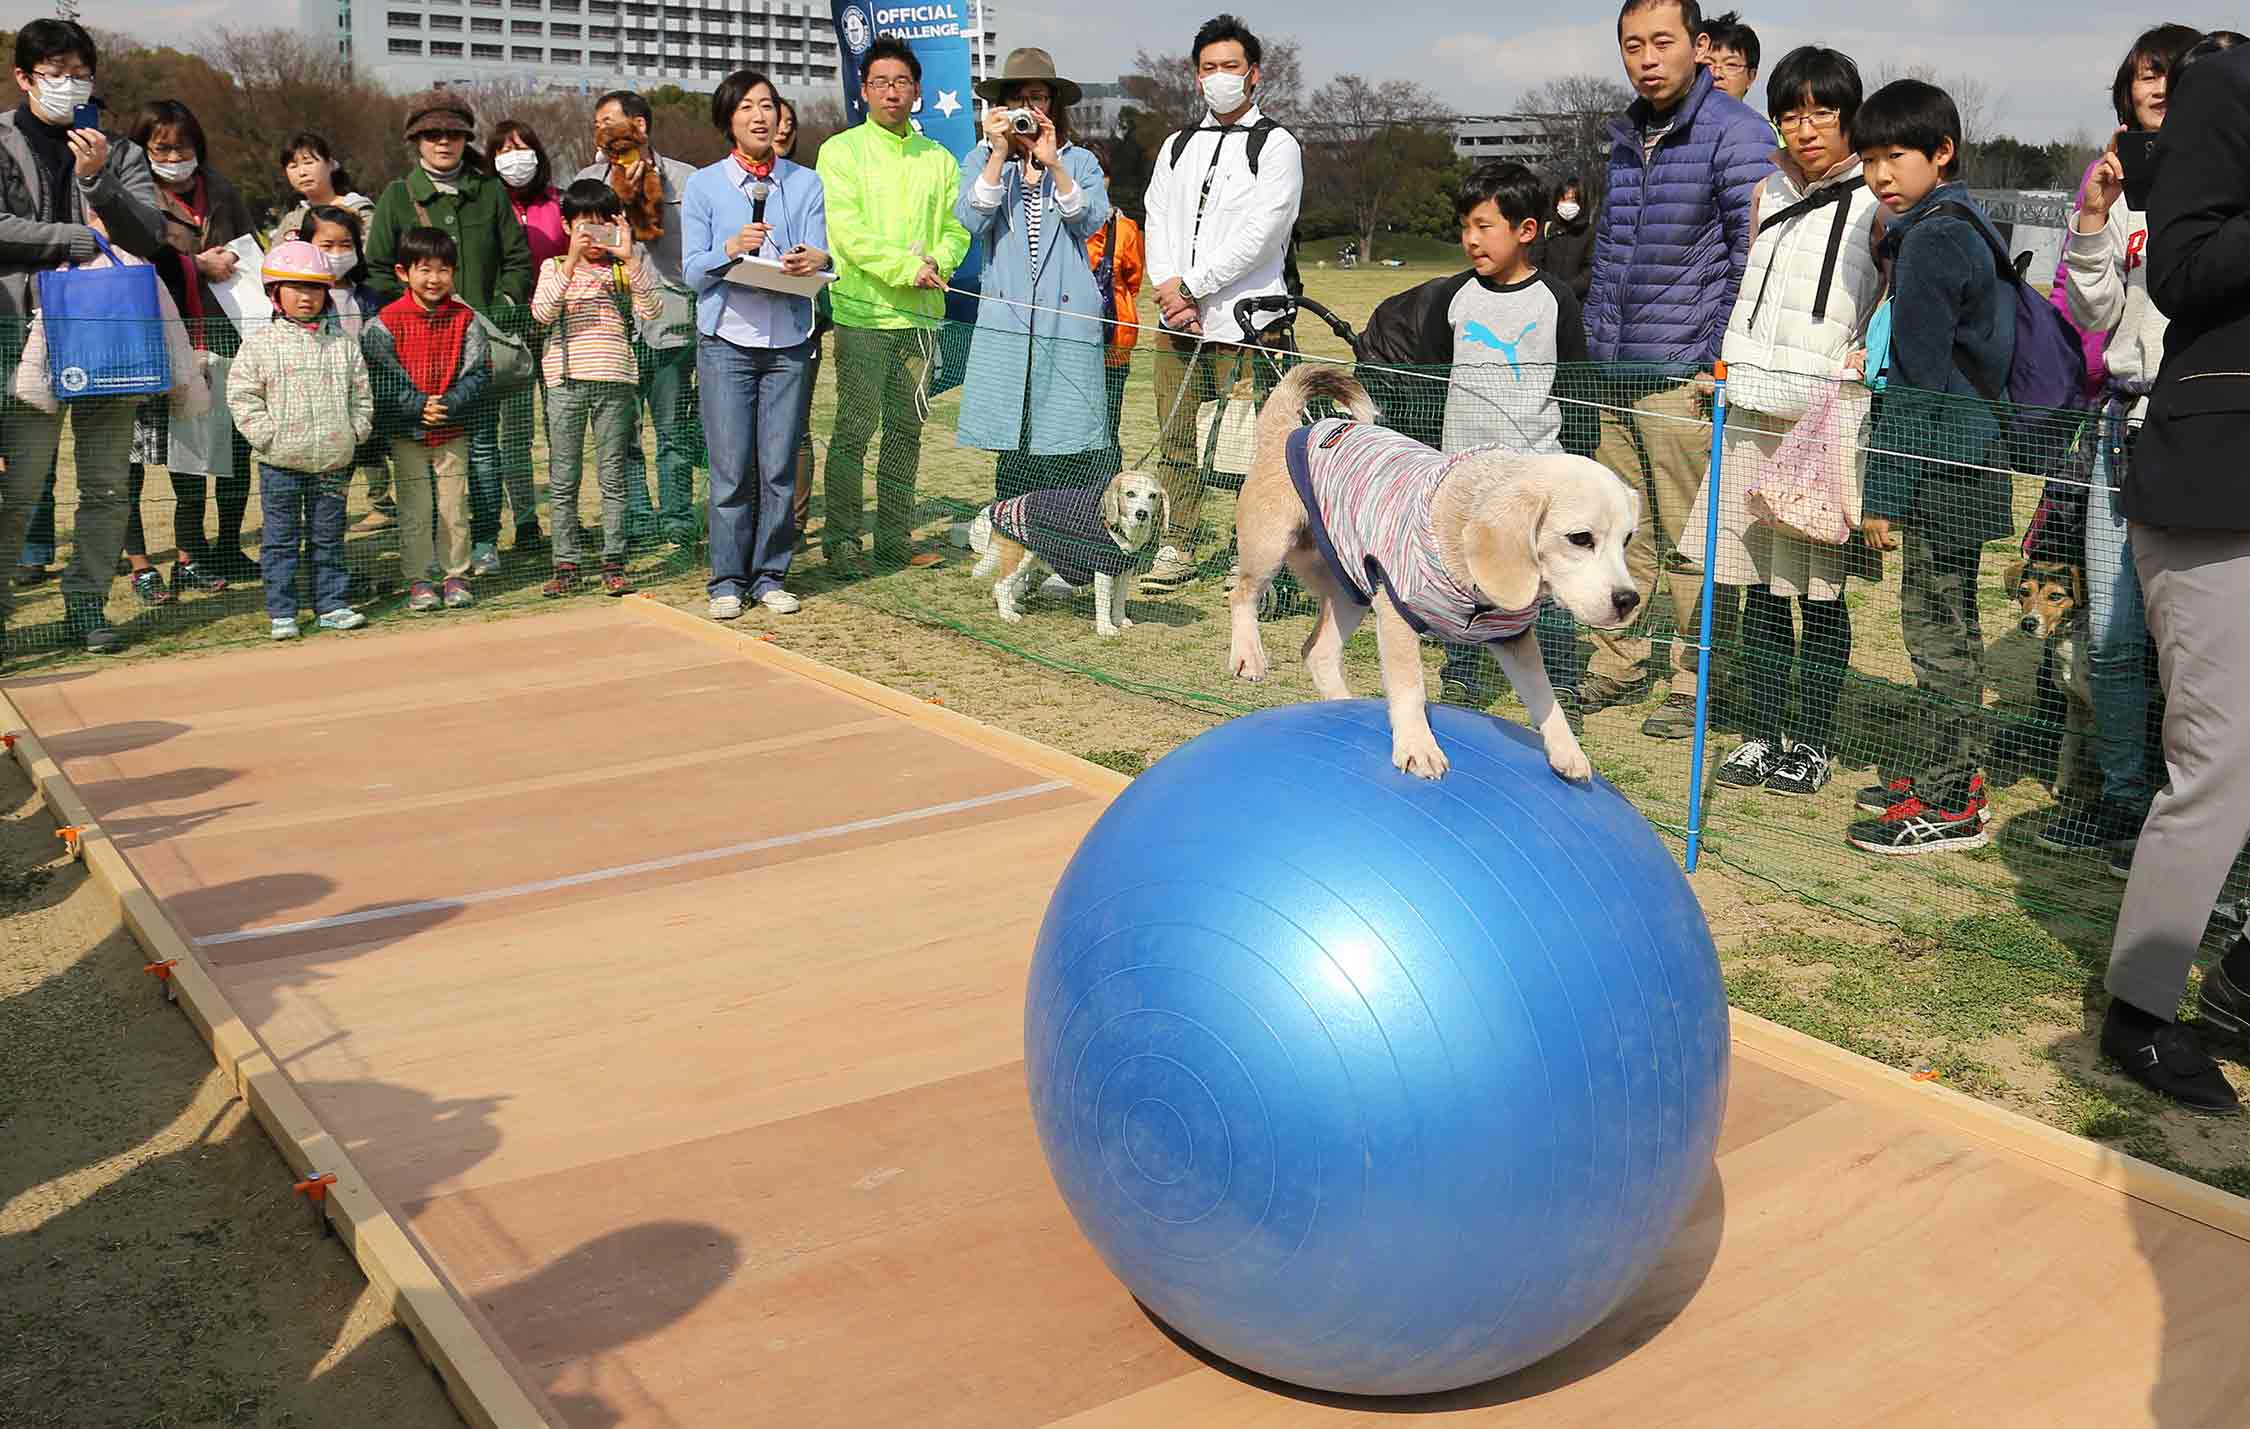 Fastest 10 m travelled on a ball by a dog